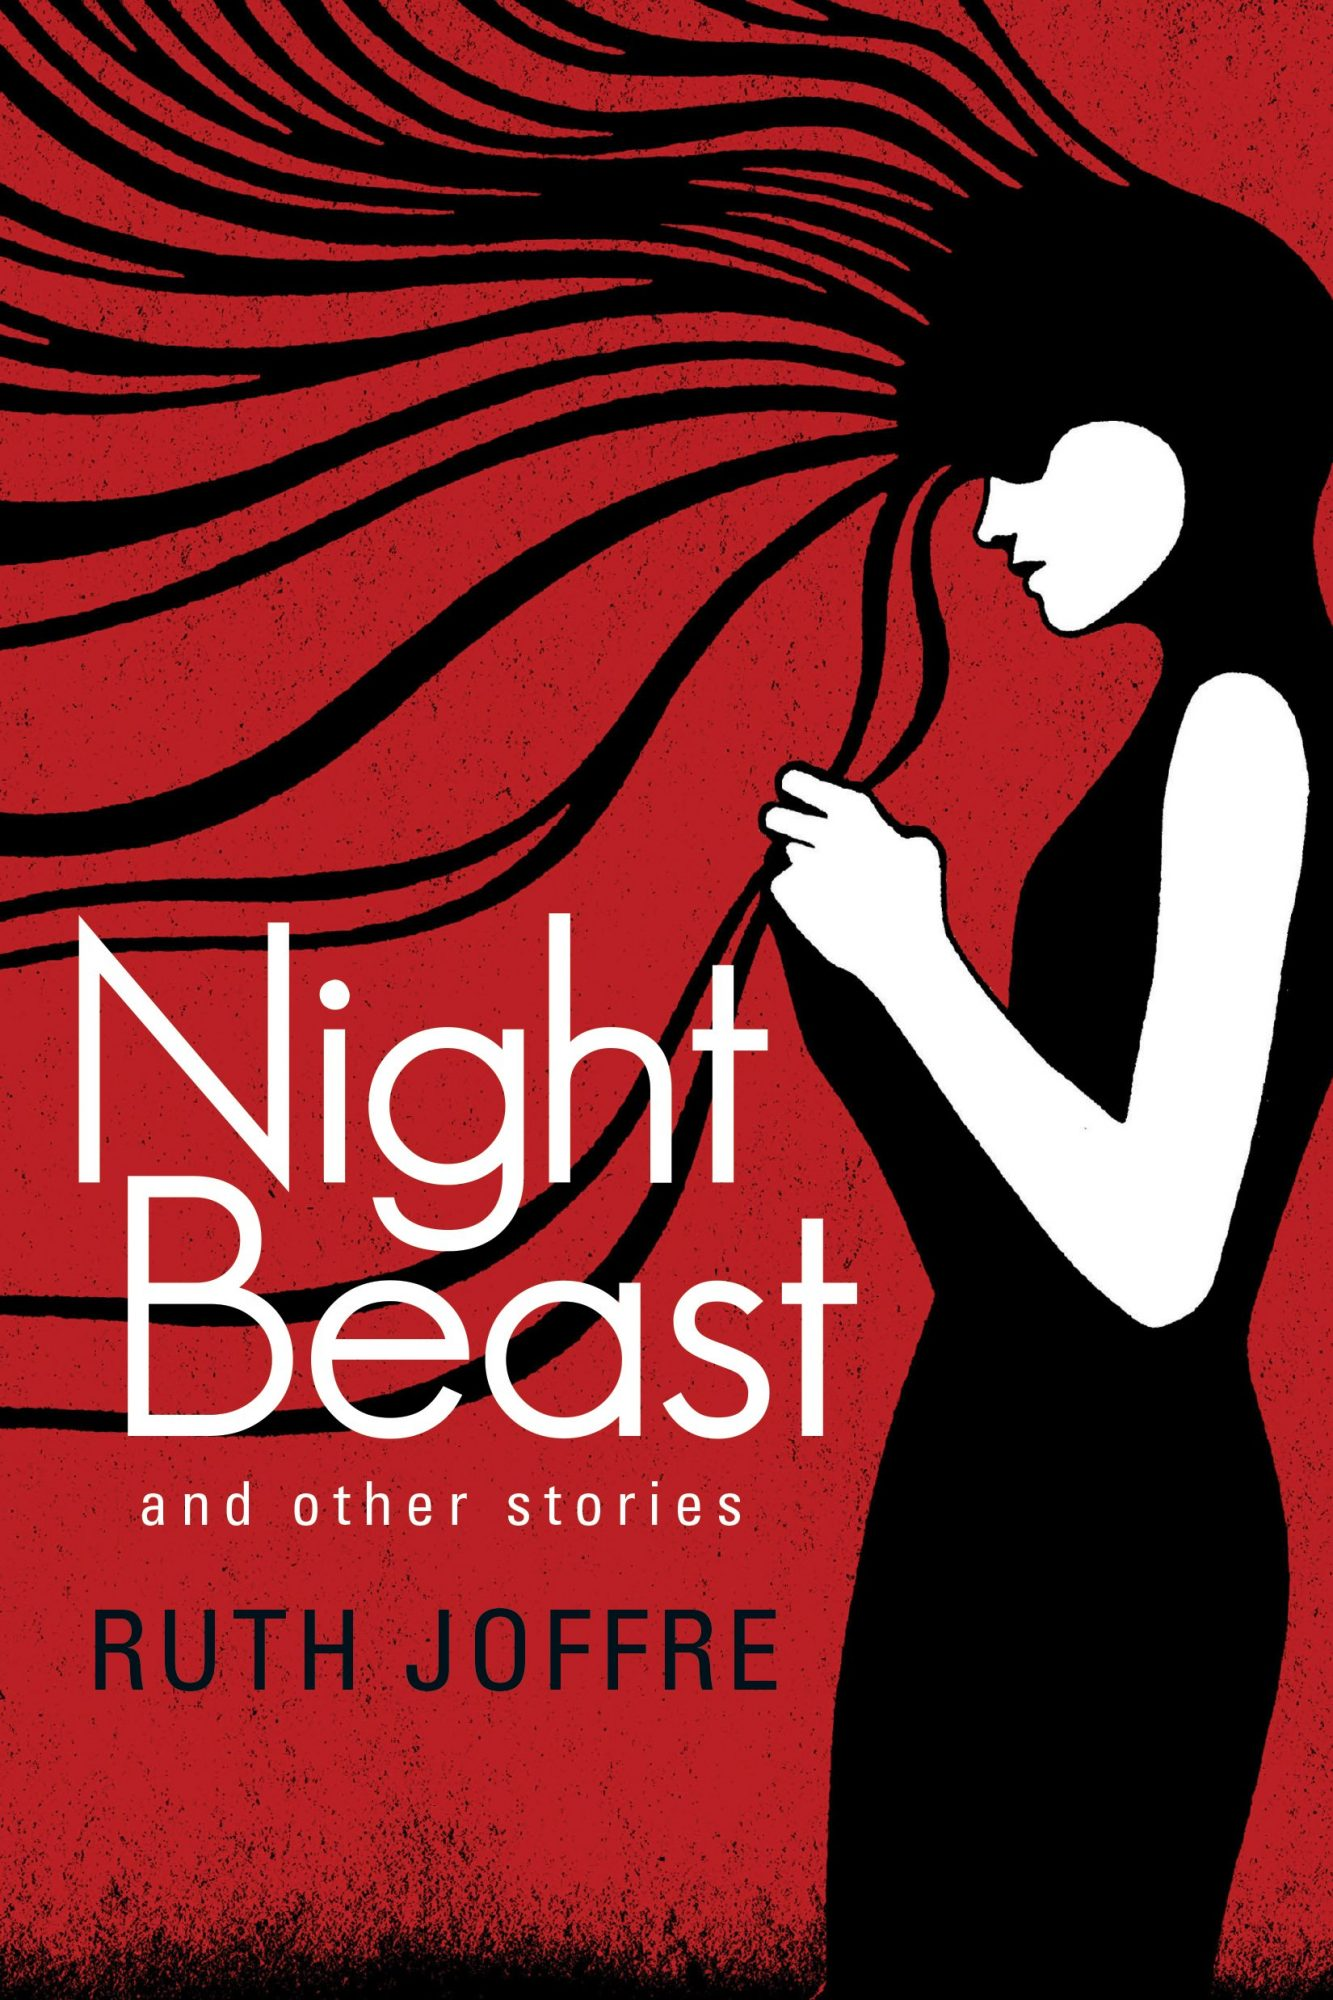 picture-of-night-beast-book-photo.jpg